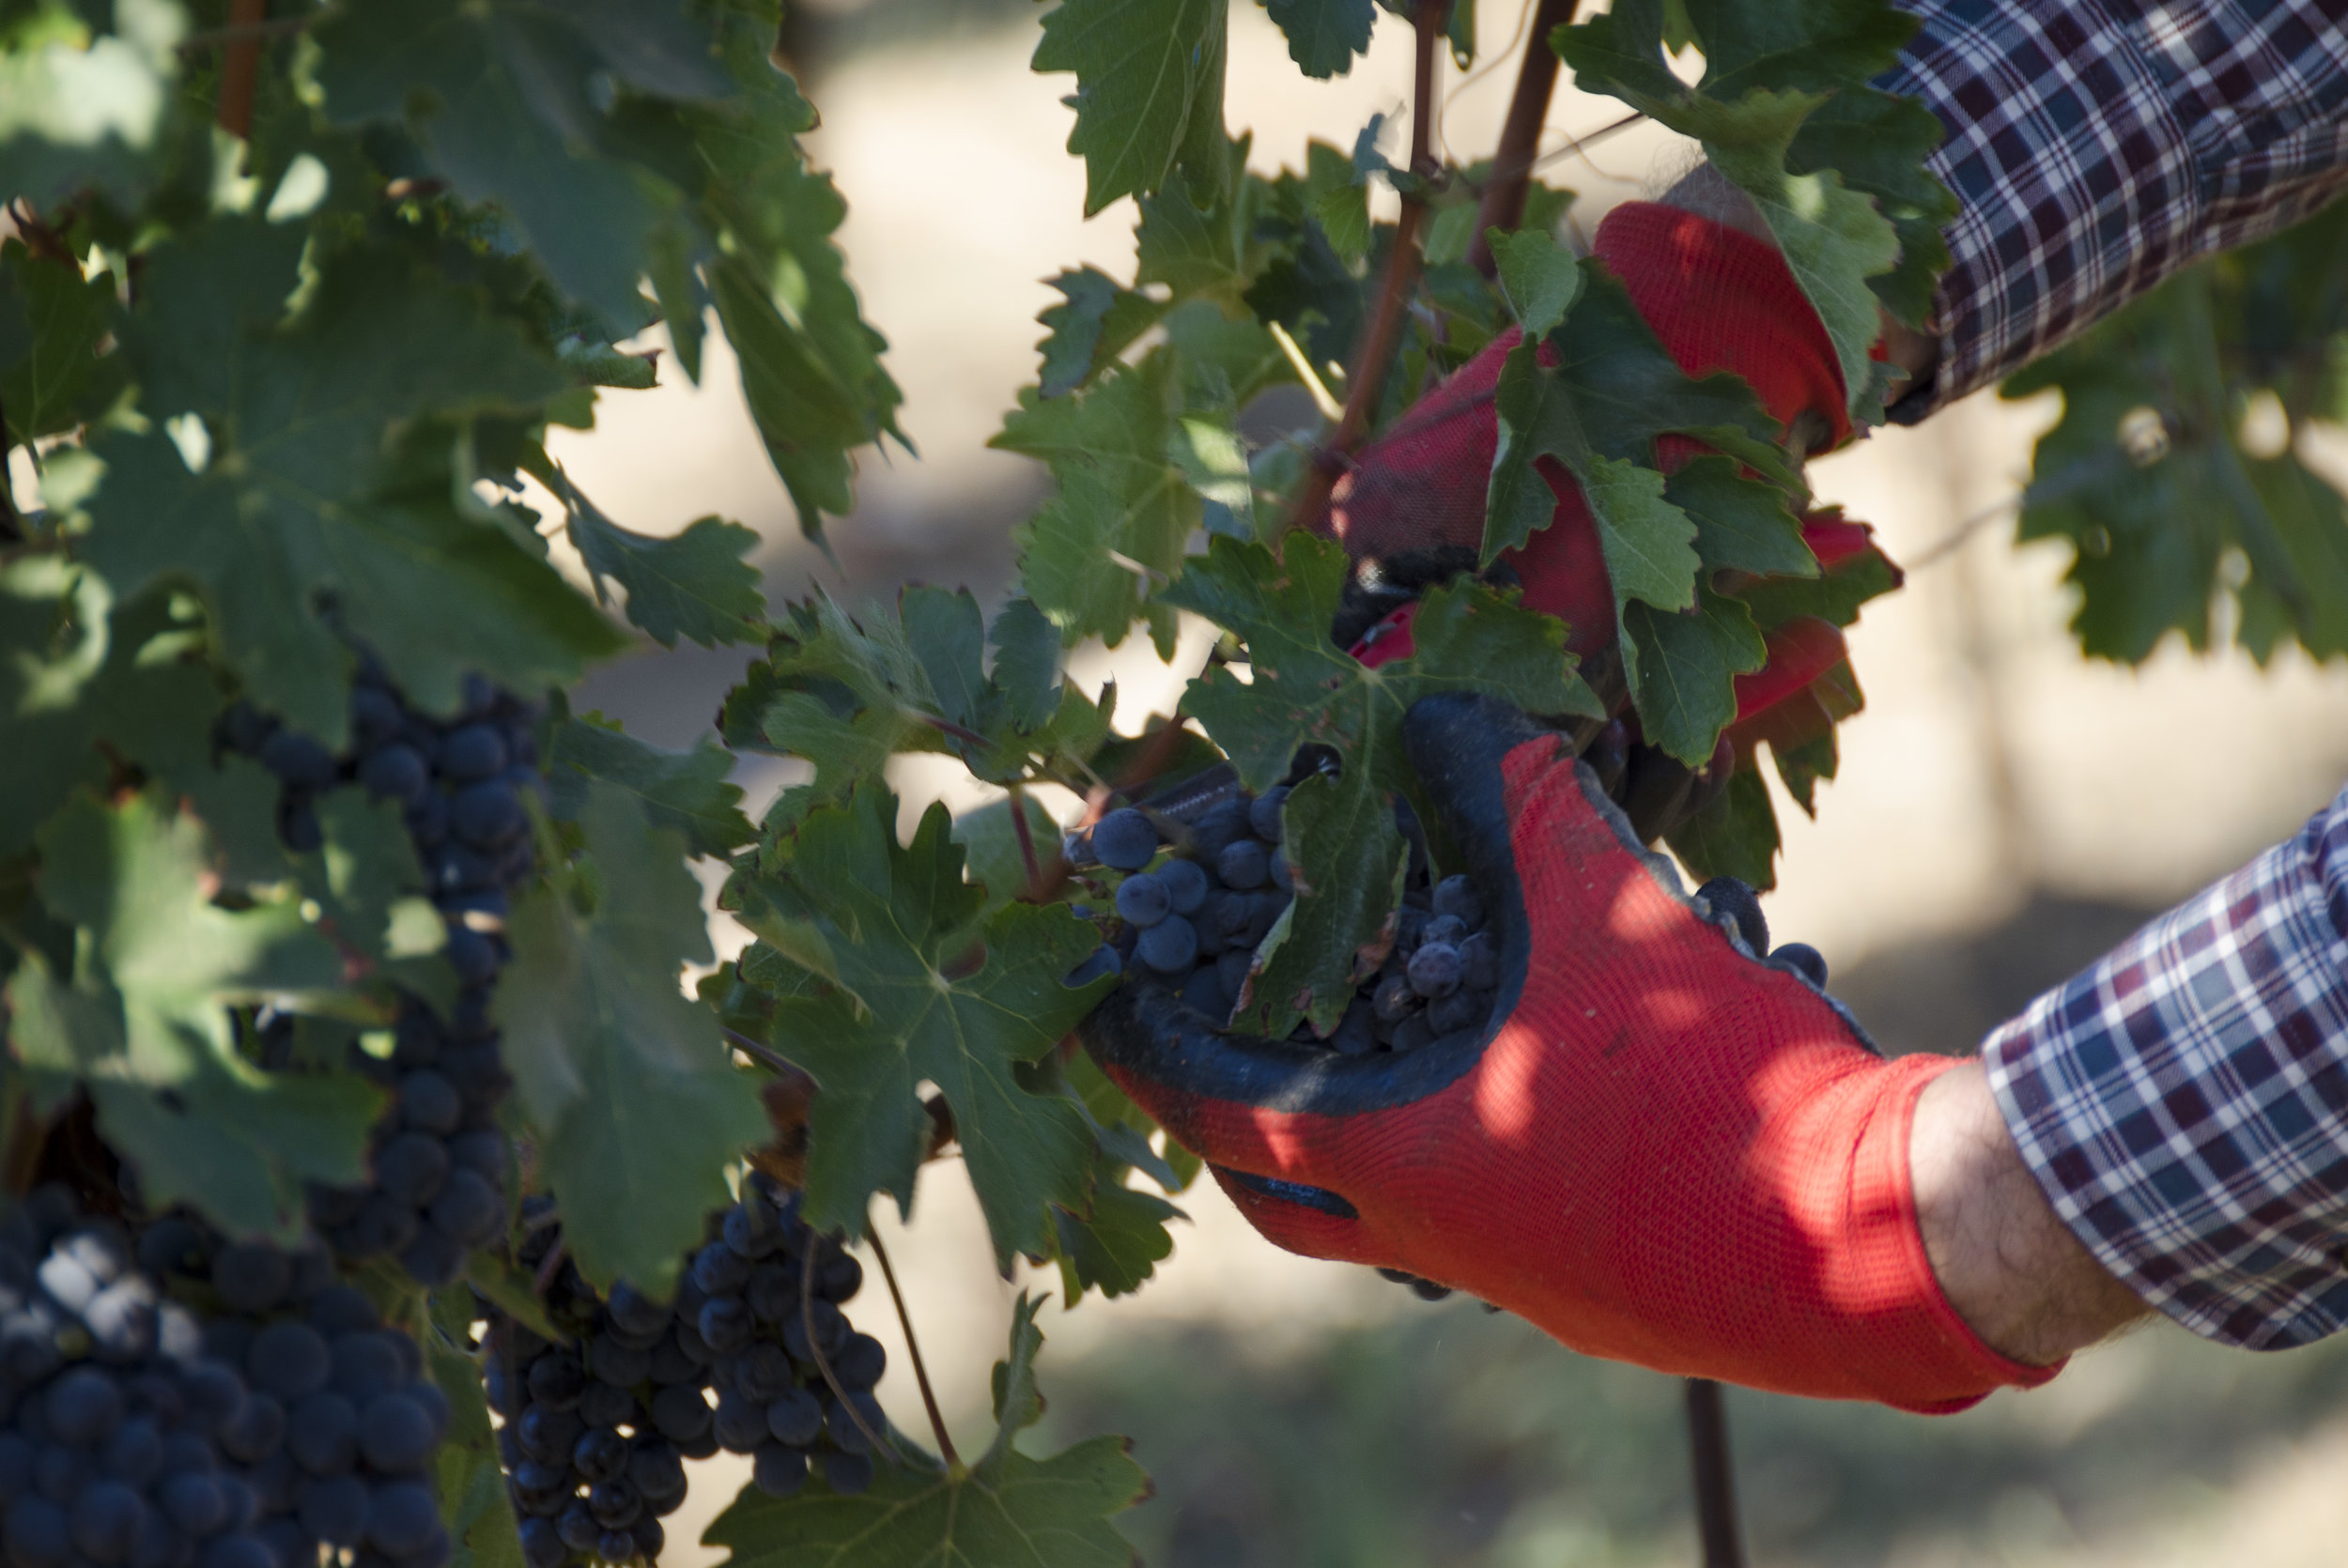 Picking Grapes by Deb Ford.jpg